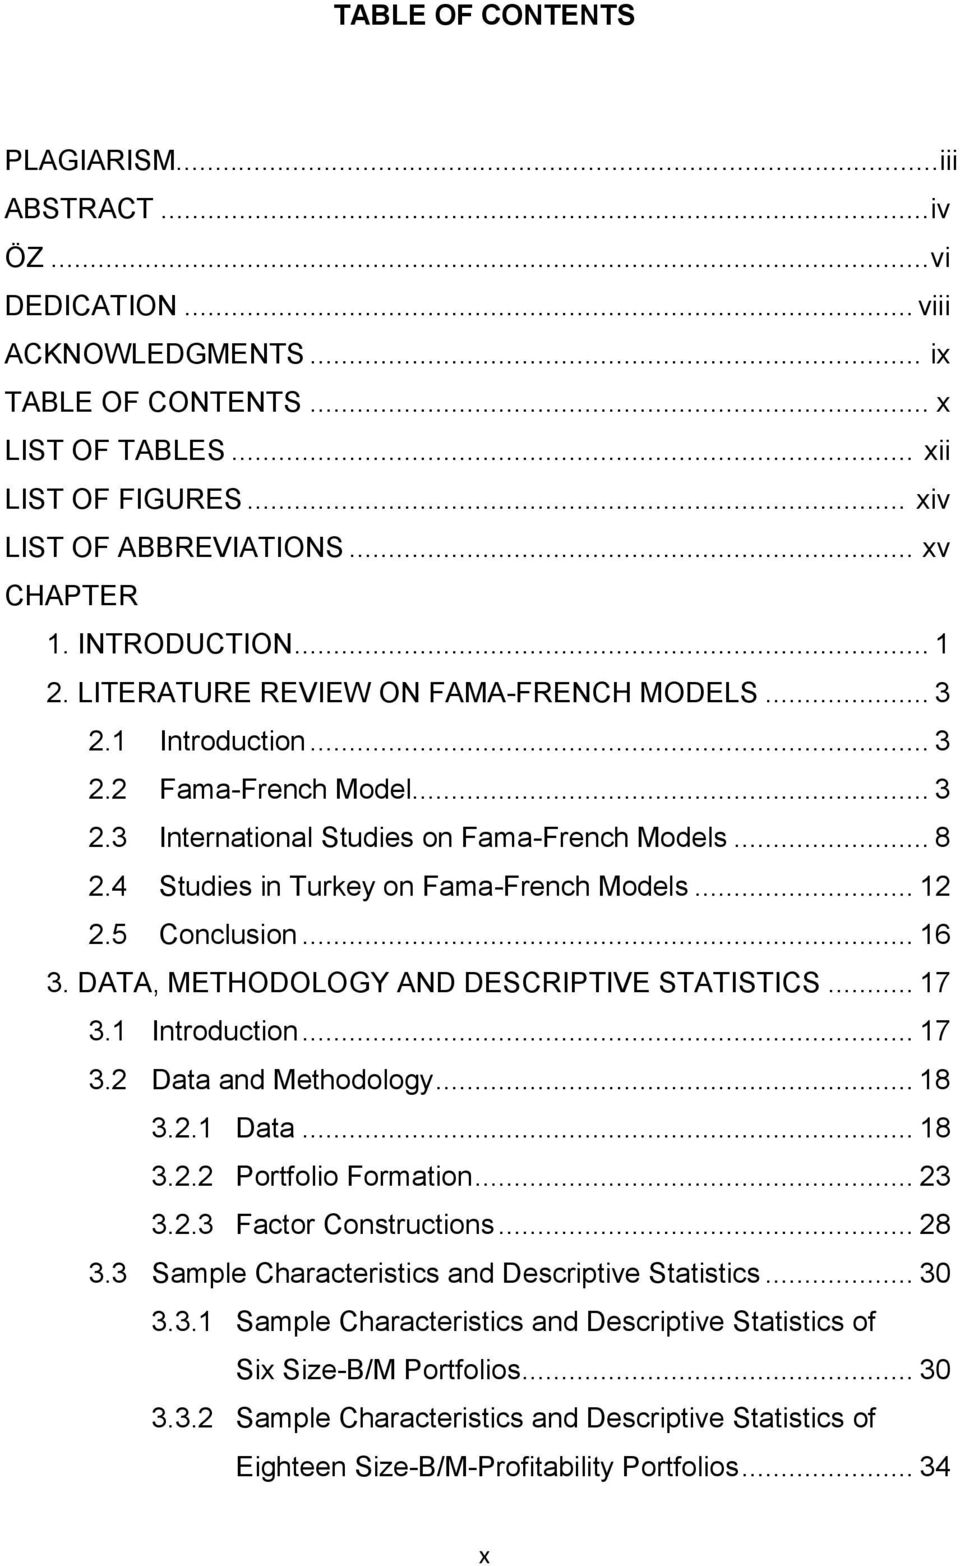 4 Studies in Turkey on Fama-French Models... 12 2.5 Conclusion... 16 3. DATA, METHODOLOGY AND DESCRIPTIVE STATISTICS... 17 3.1 Introduction... 17 3.2 Data and Methodology... 18 3.2.1 Data... 18 3.2.2 Portfolio Formation.